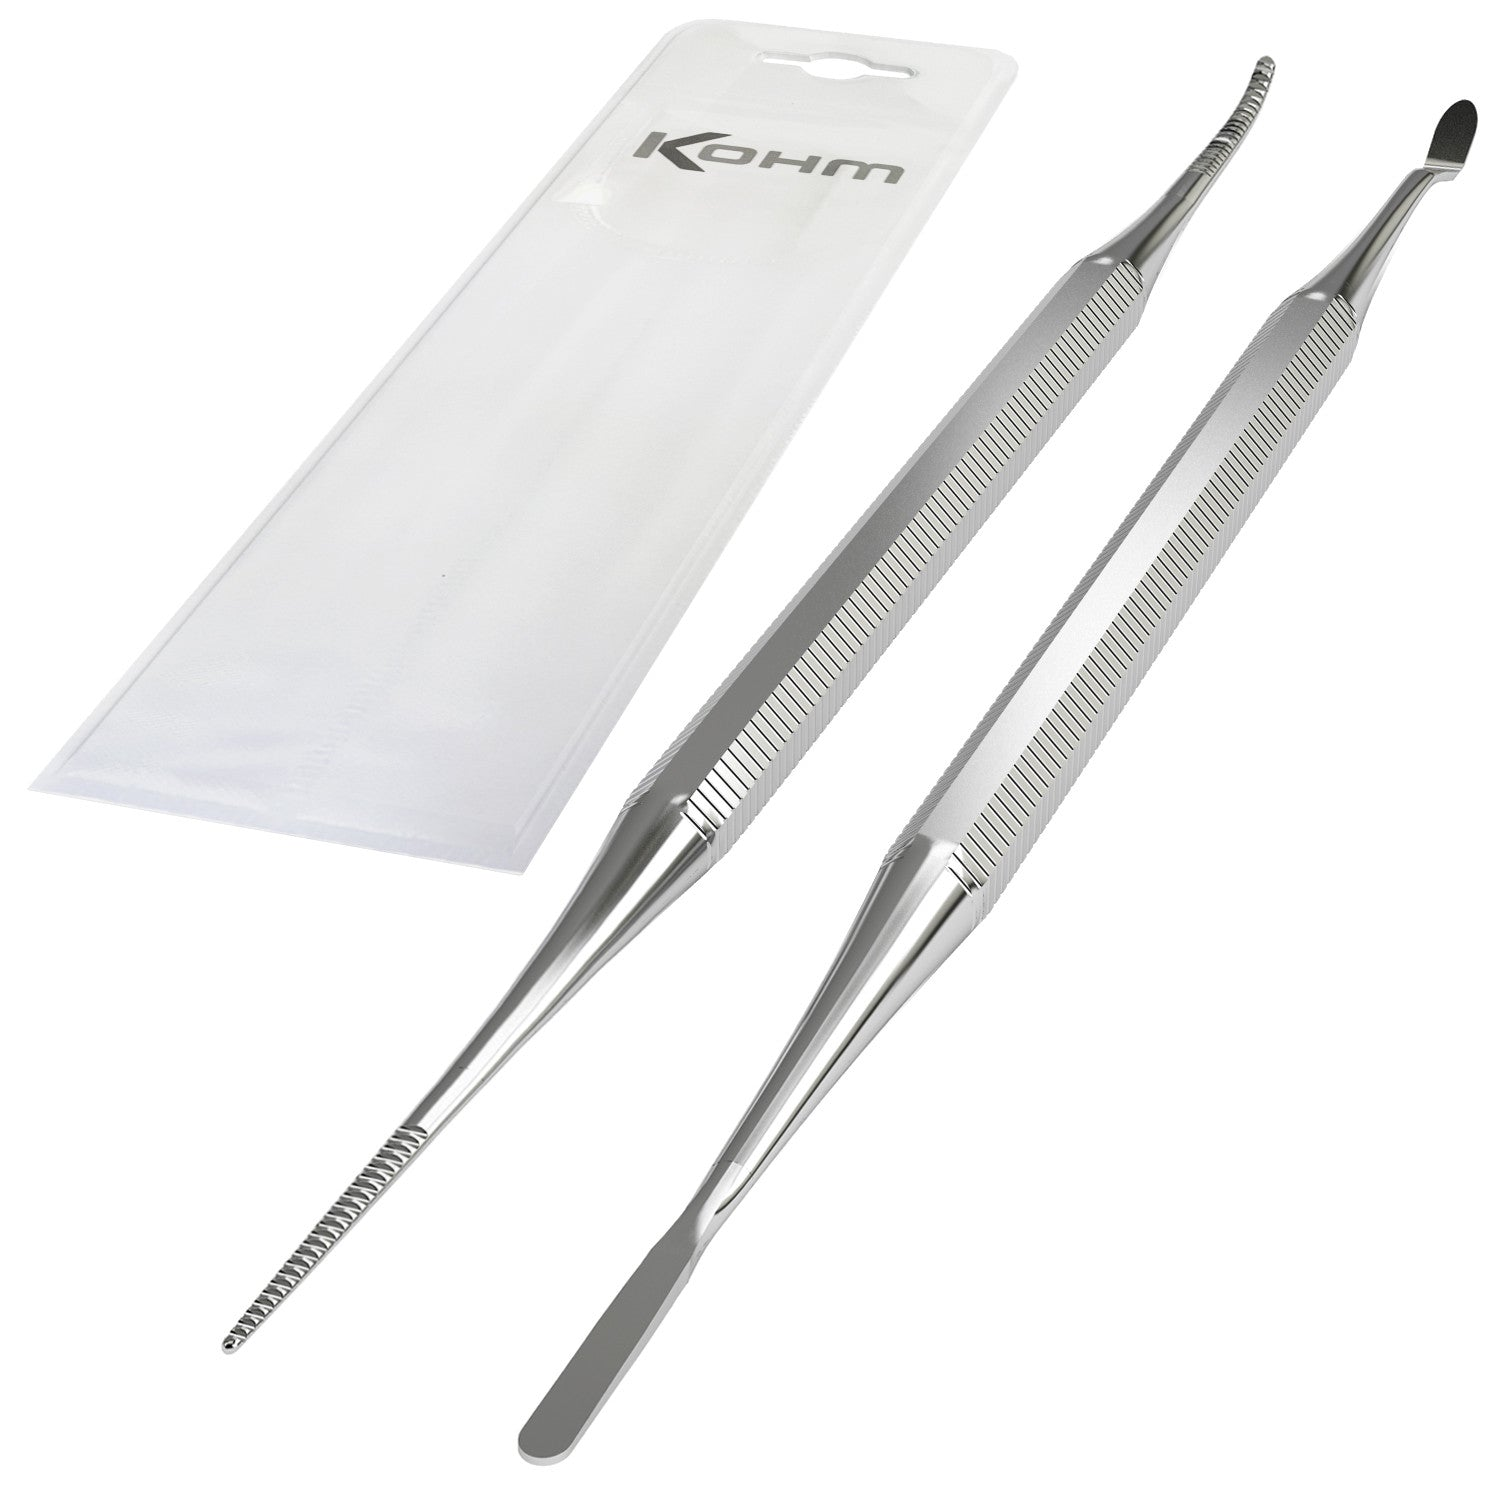 Kohm KP-7100 Stainless Steel, Ingrown Toenail File & Lifter Set